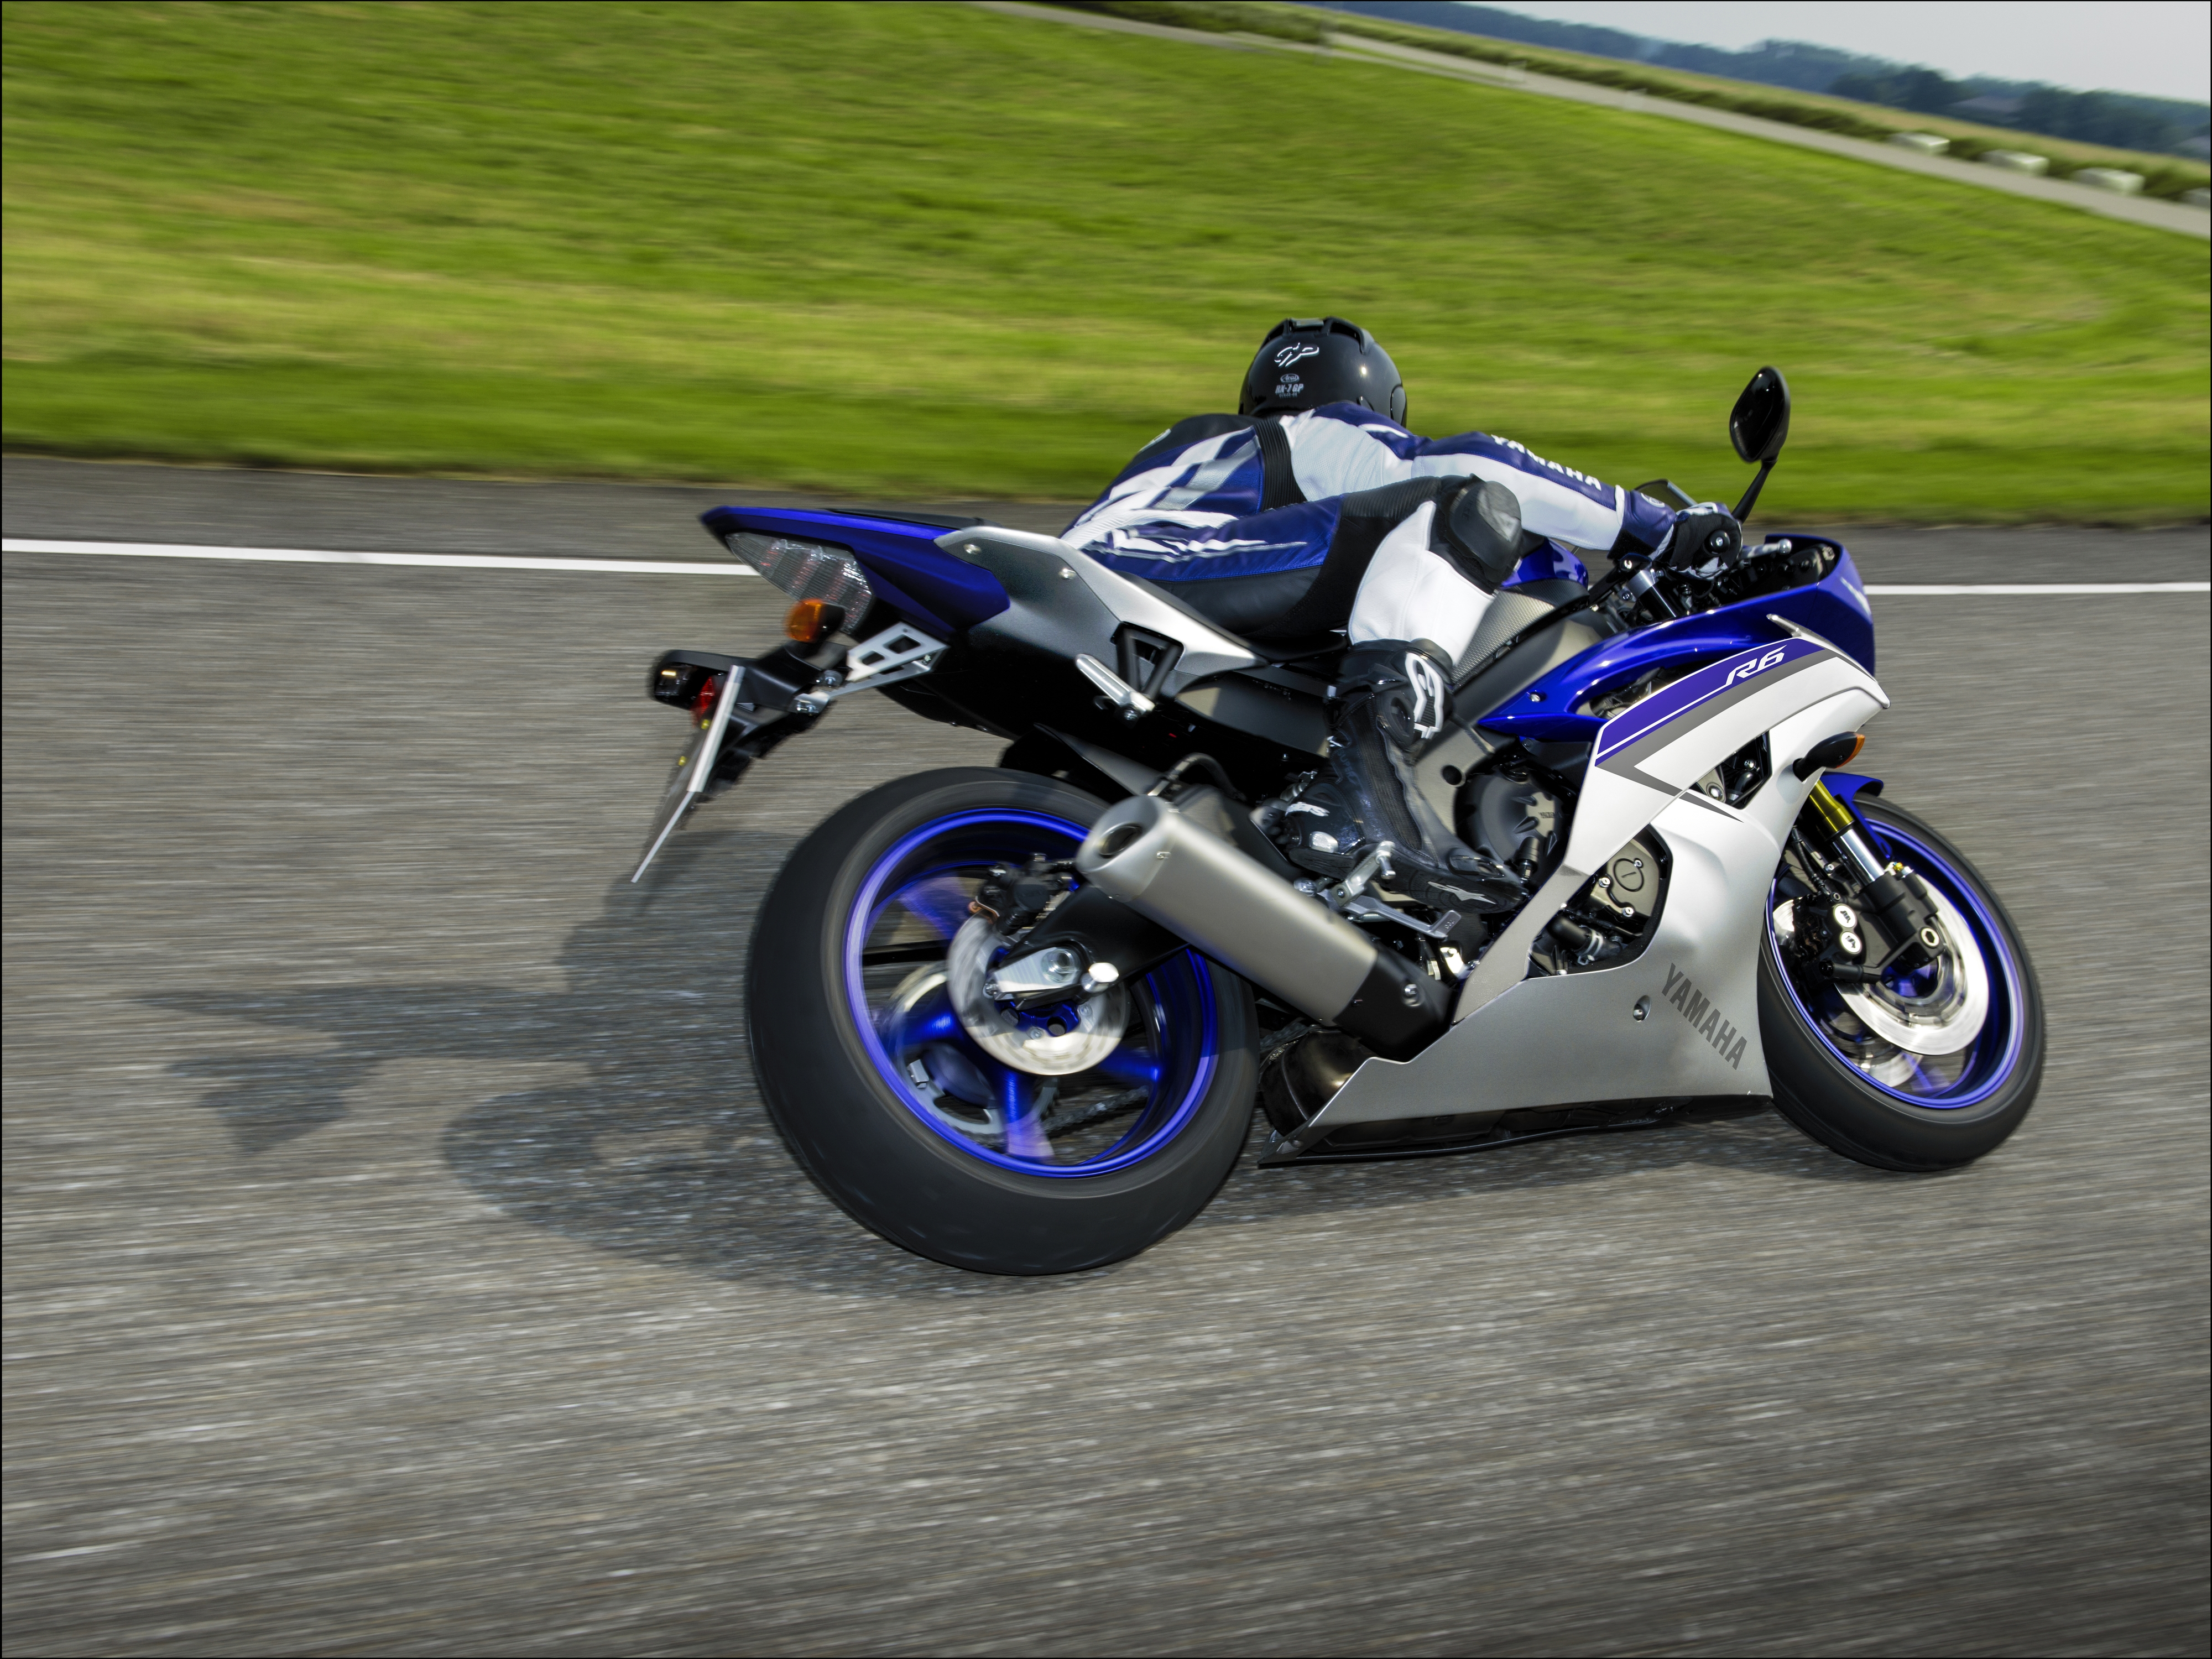 new colours for yamaha r6 and r125 visordown. Black Bedroom Furniture Sets. Home Design Ideas